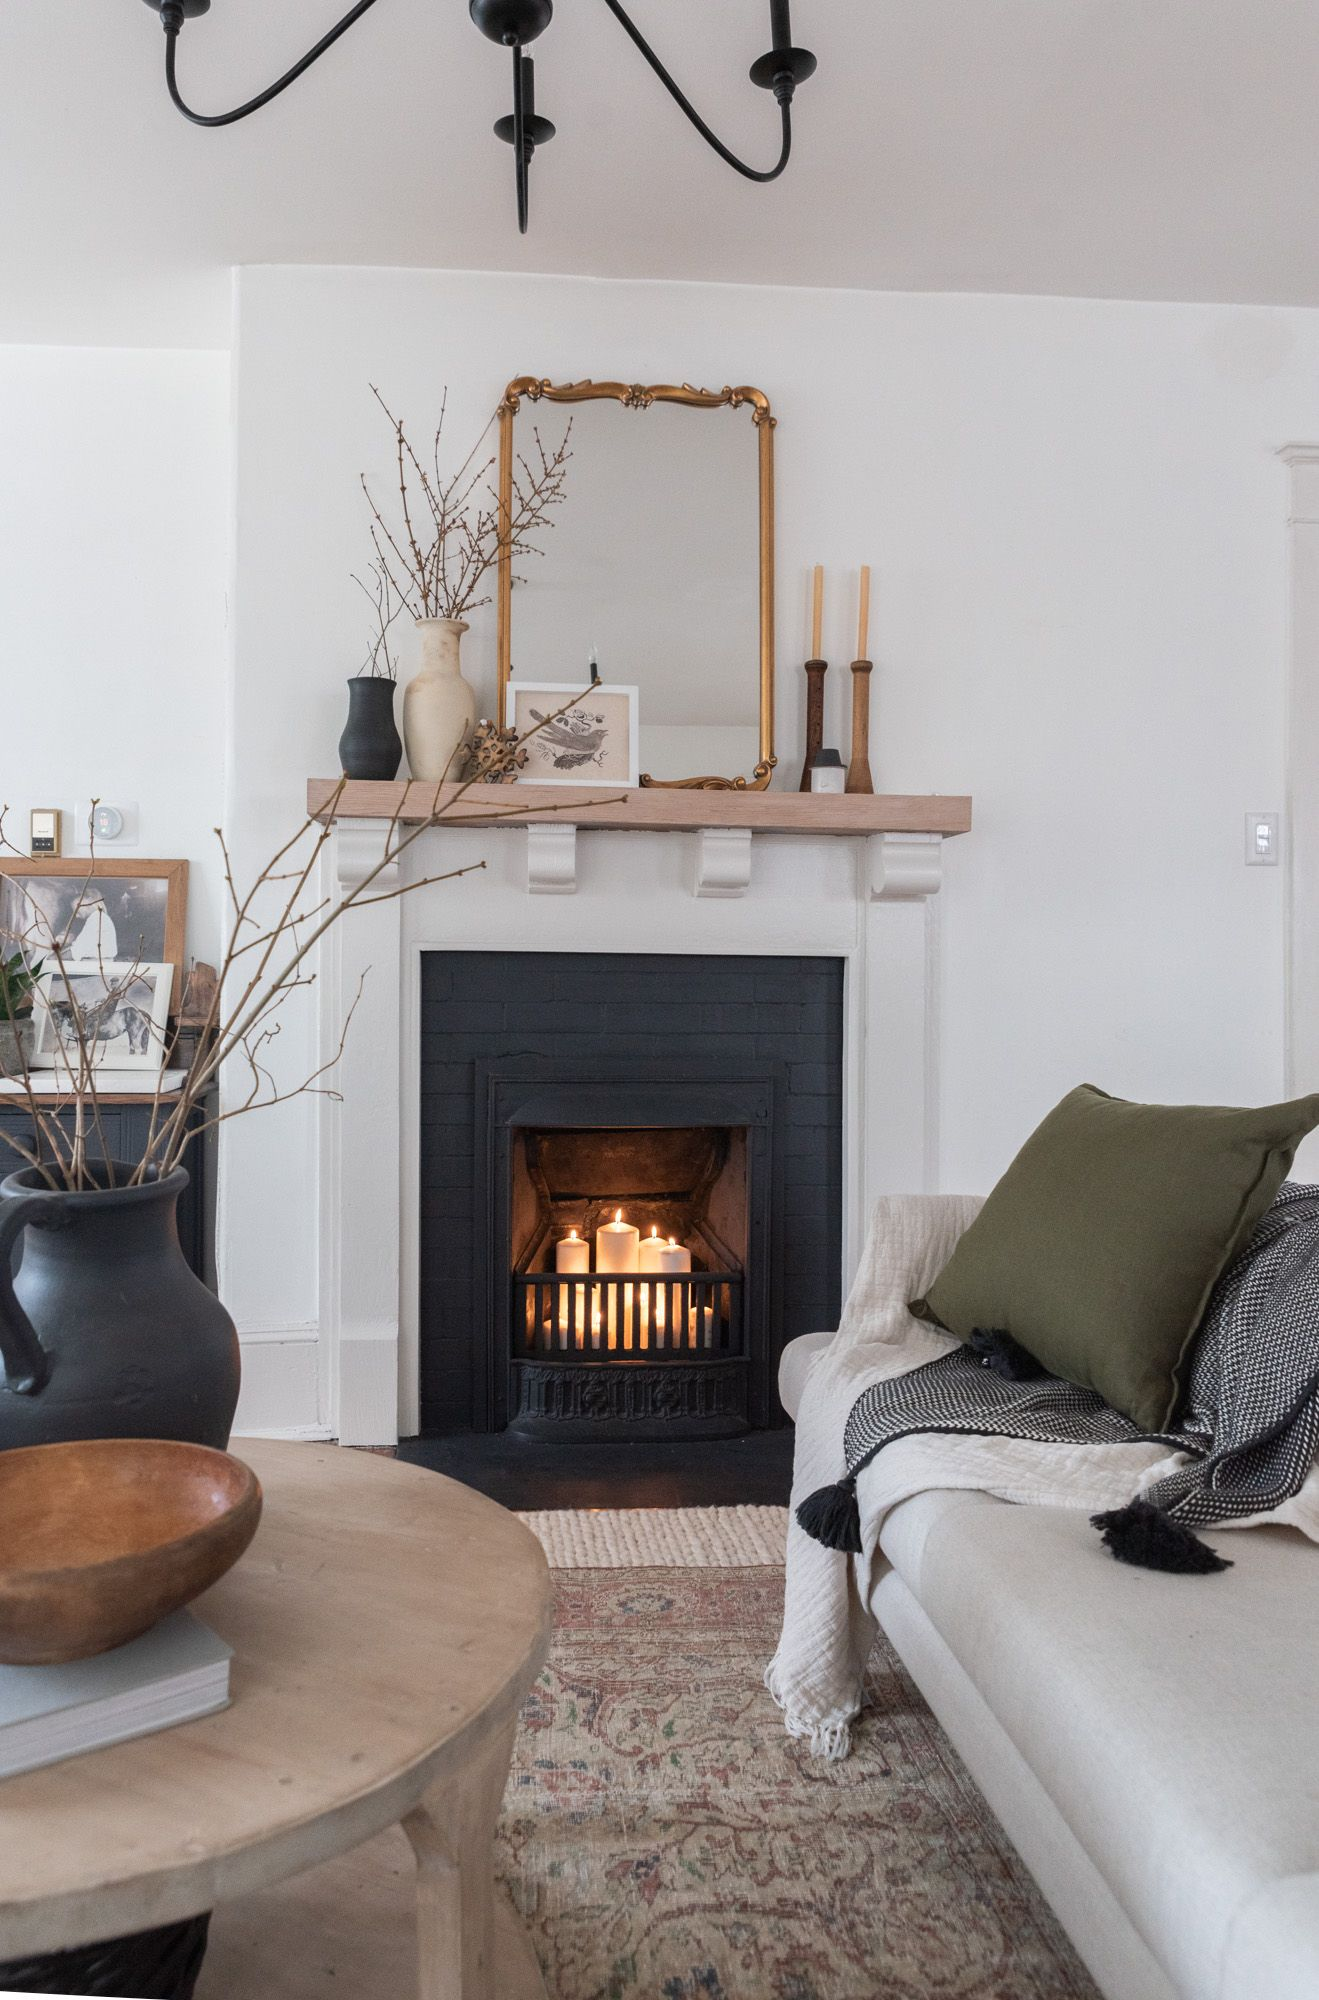 5 Ways to Decorate For Winter - The Wild Decoelis